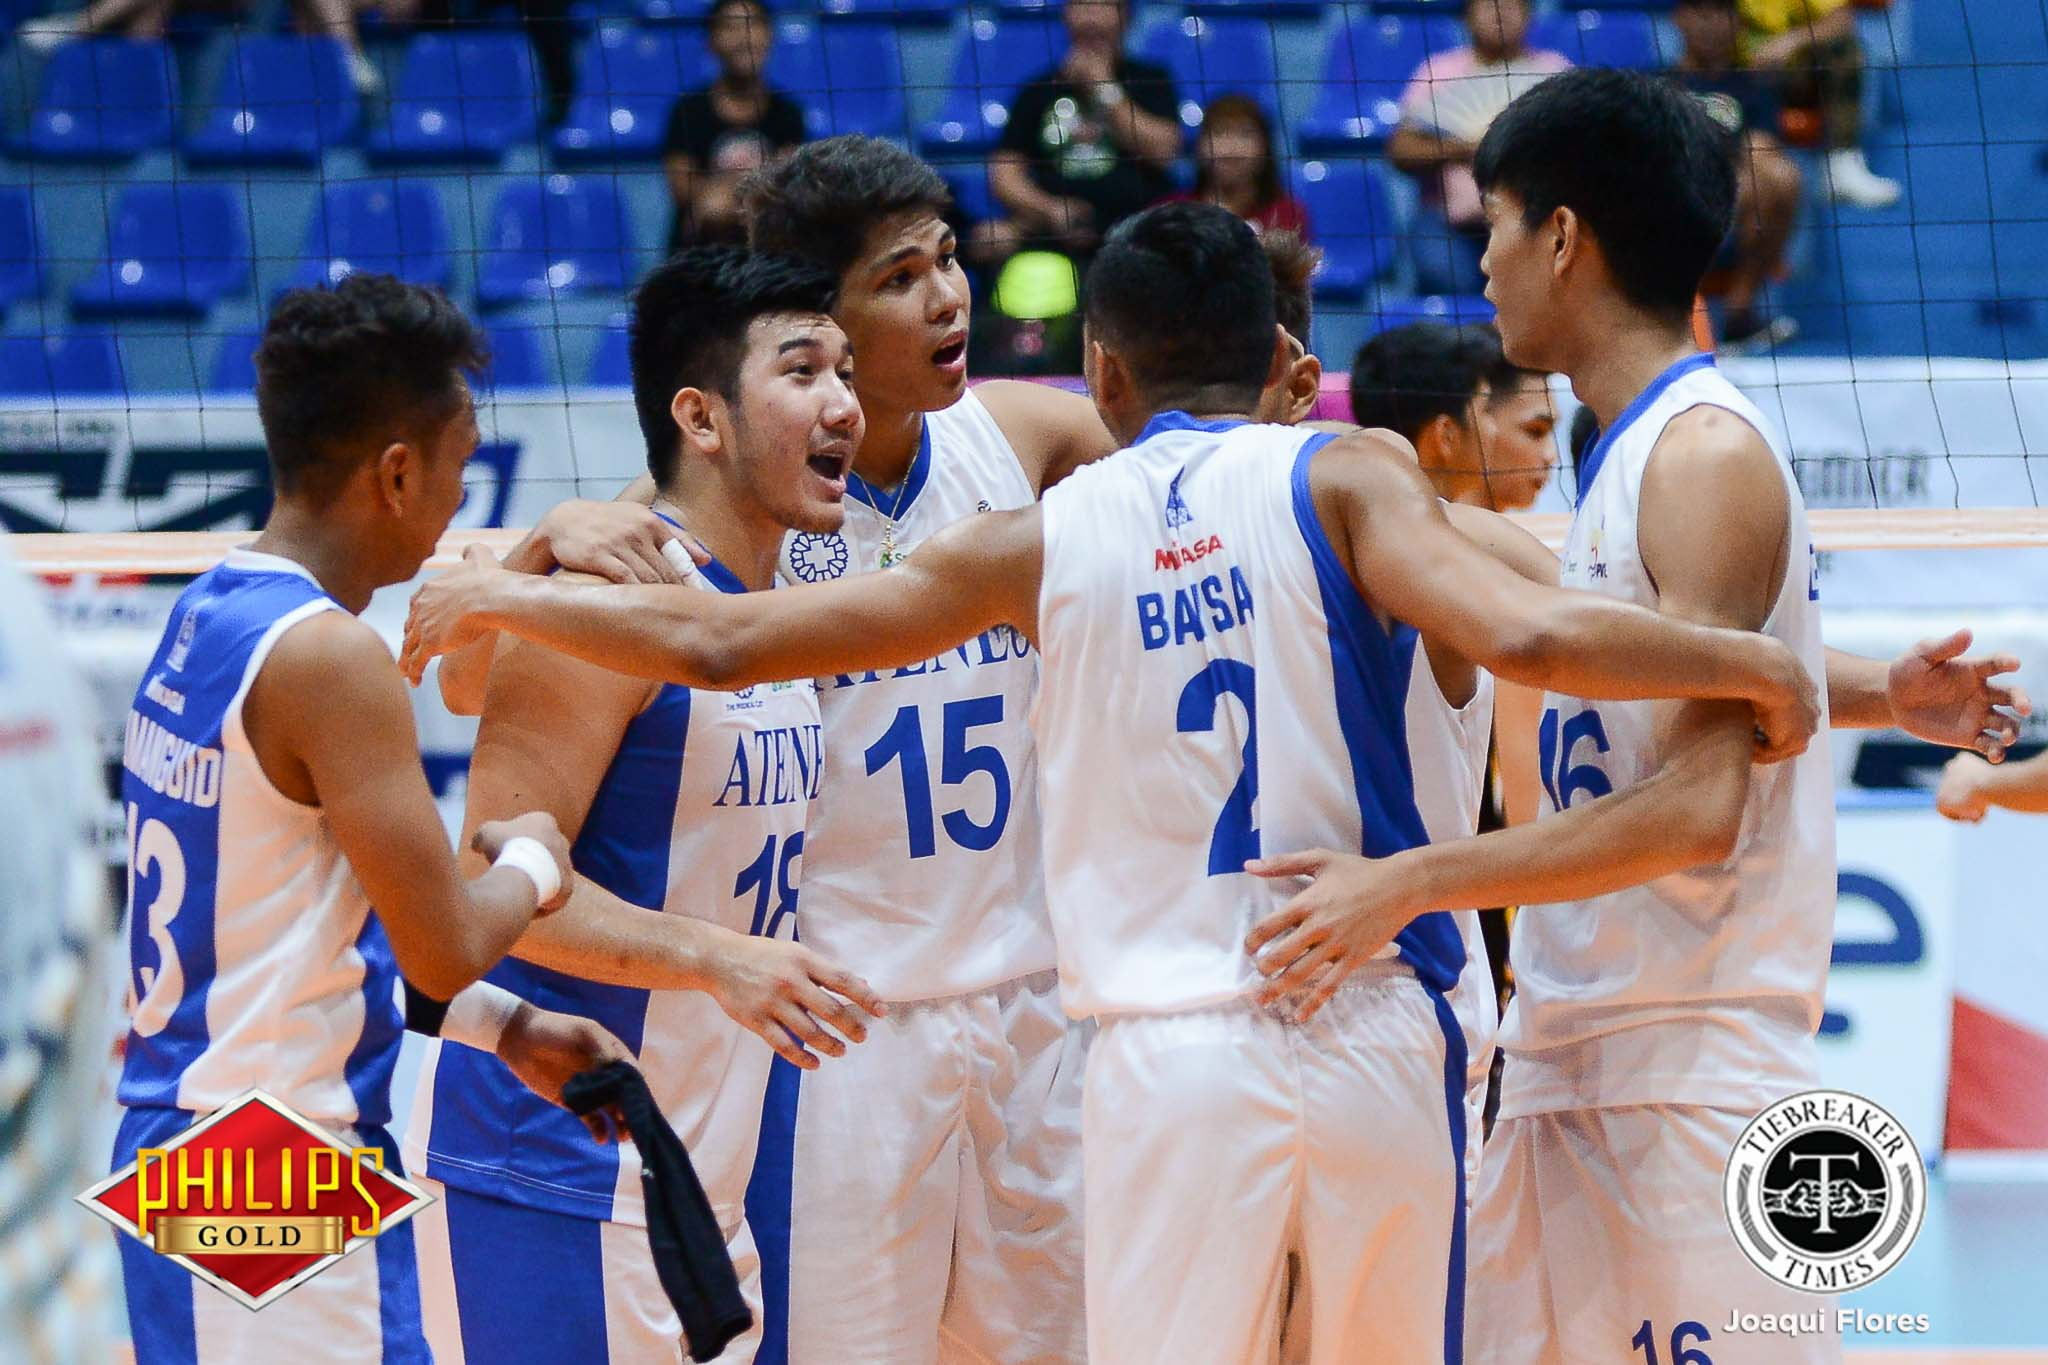 Philippine Sports News - Tiebreaker Times Espejo, Ateneo sweep UST to remain spotless ADMU News PVL UST Volleyball  UST Men's Volleyball Marck Espejo Manuel Sumanguid Joshua Umandal John Rivera Ish Polvorosa Ateneo Men's Volleyball 2017 PVL Season 2017 PVL Men's Collegiate Conference